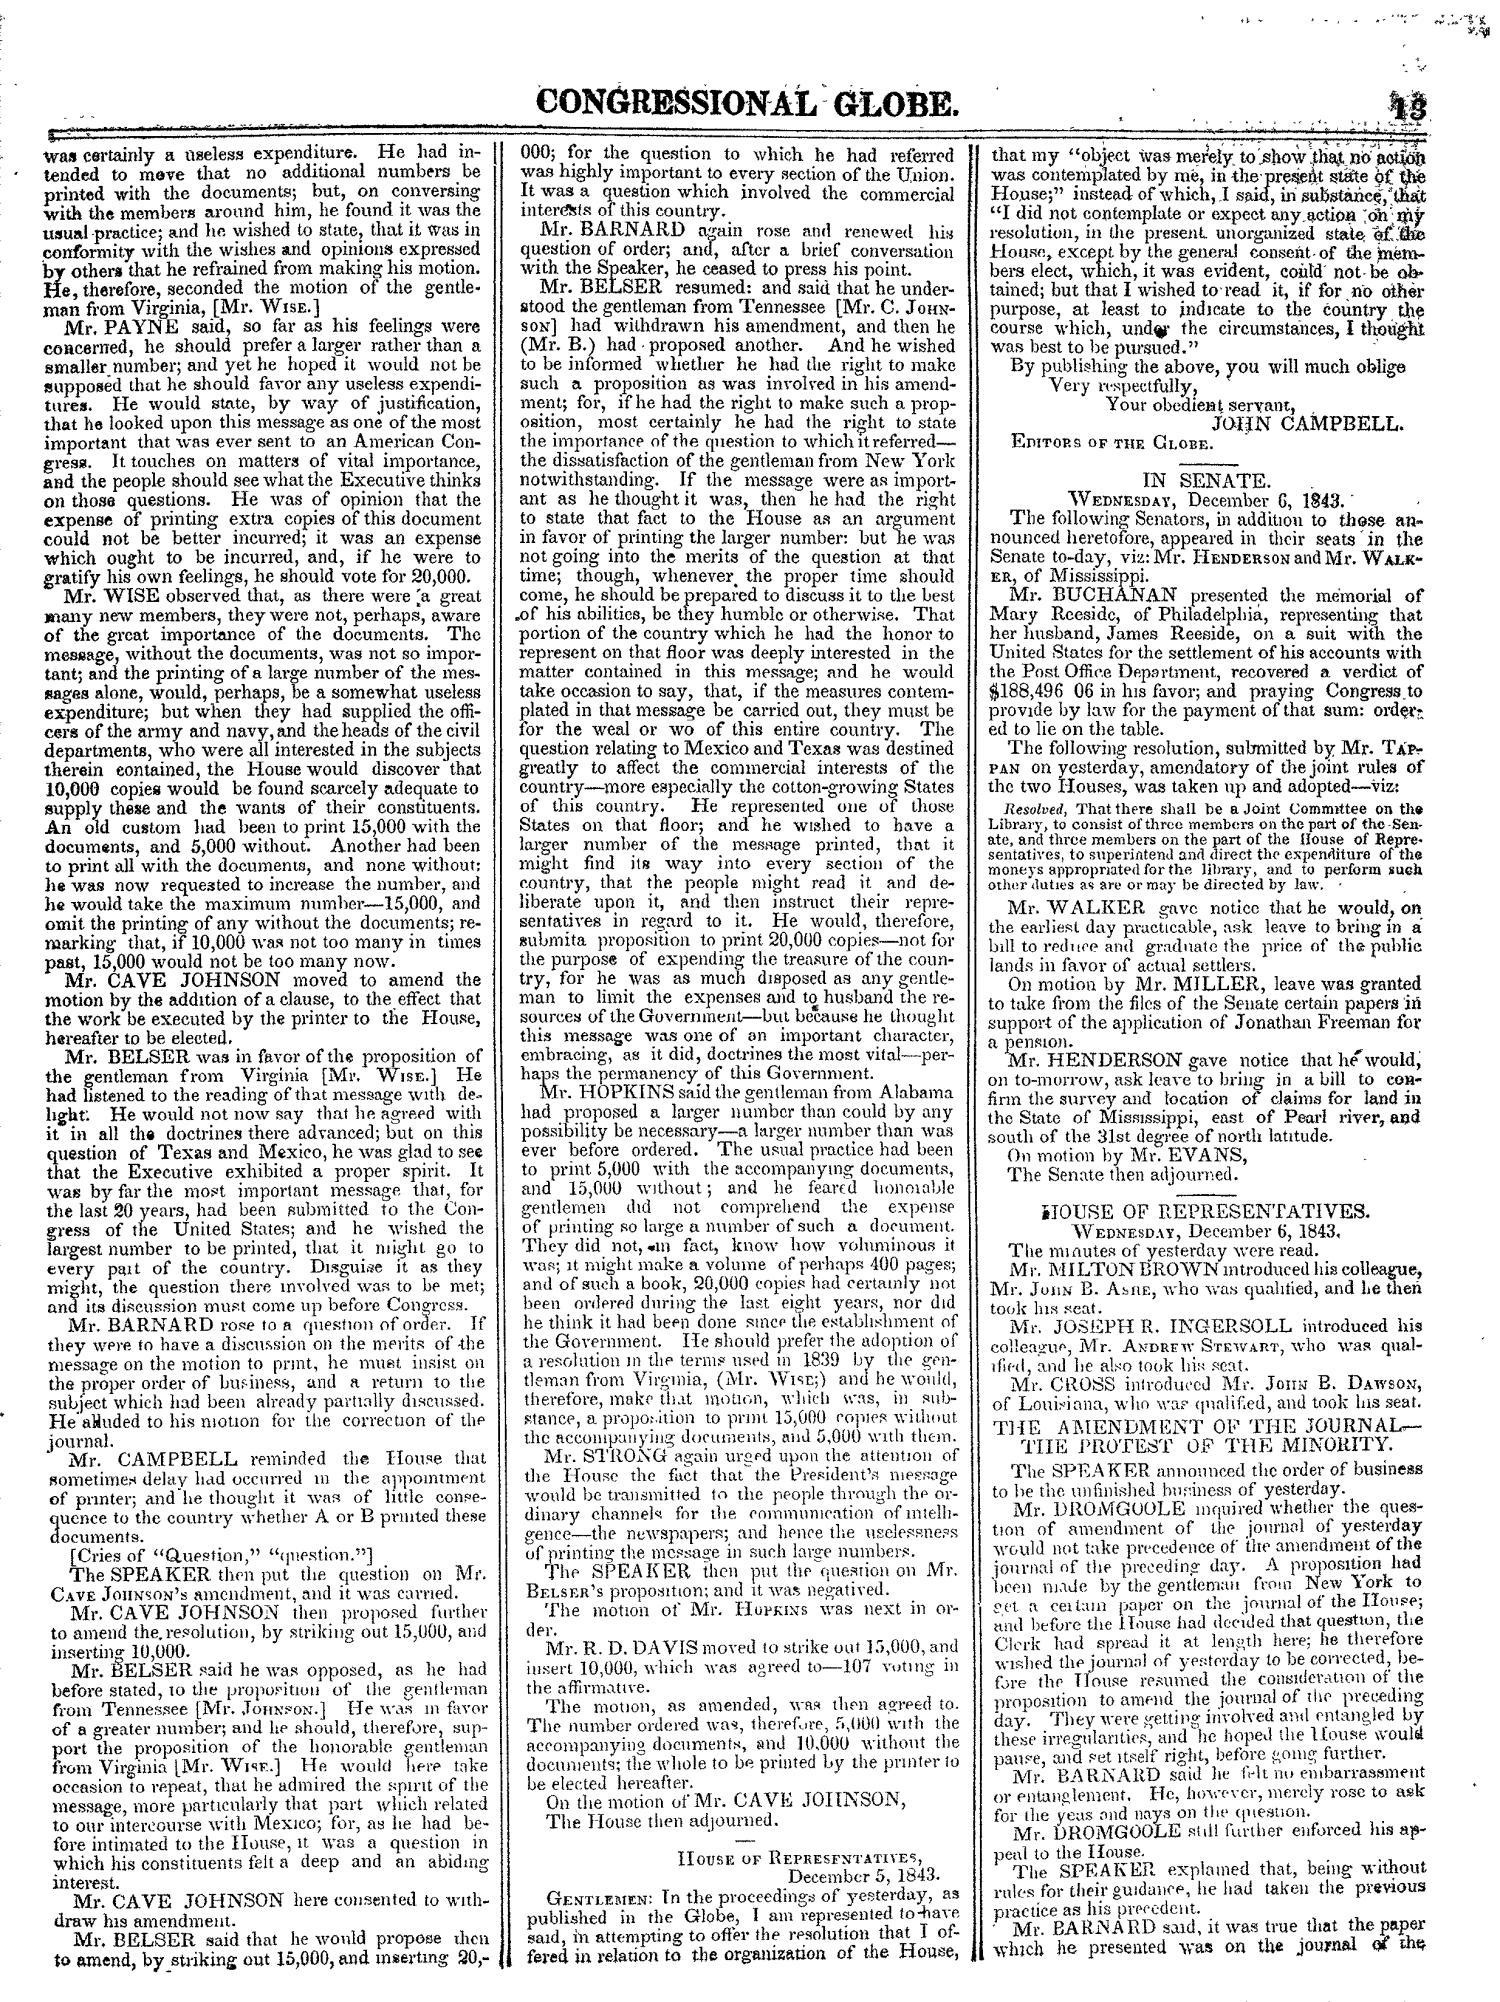 The Congressional Globe, Volume 13, Part 1: Twenty-Eighth Congress, First Session                                                                                                      13